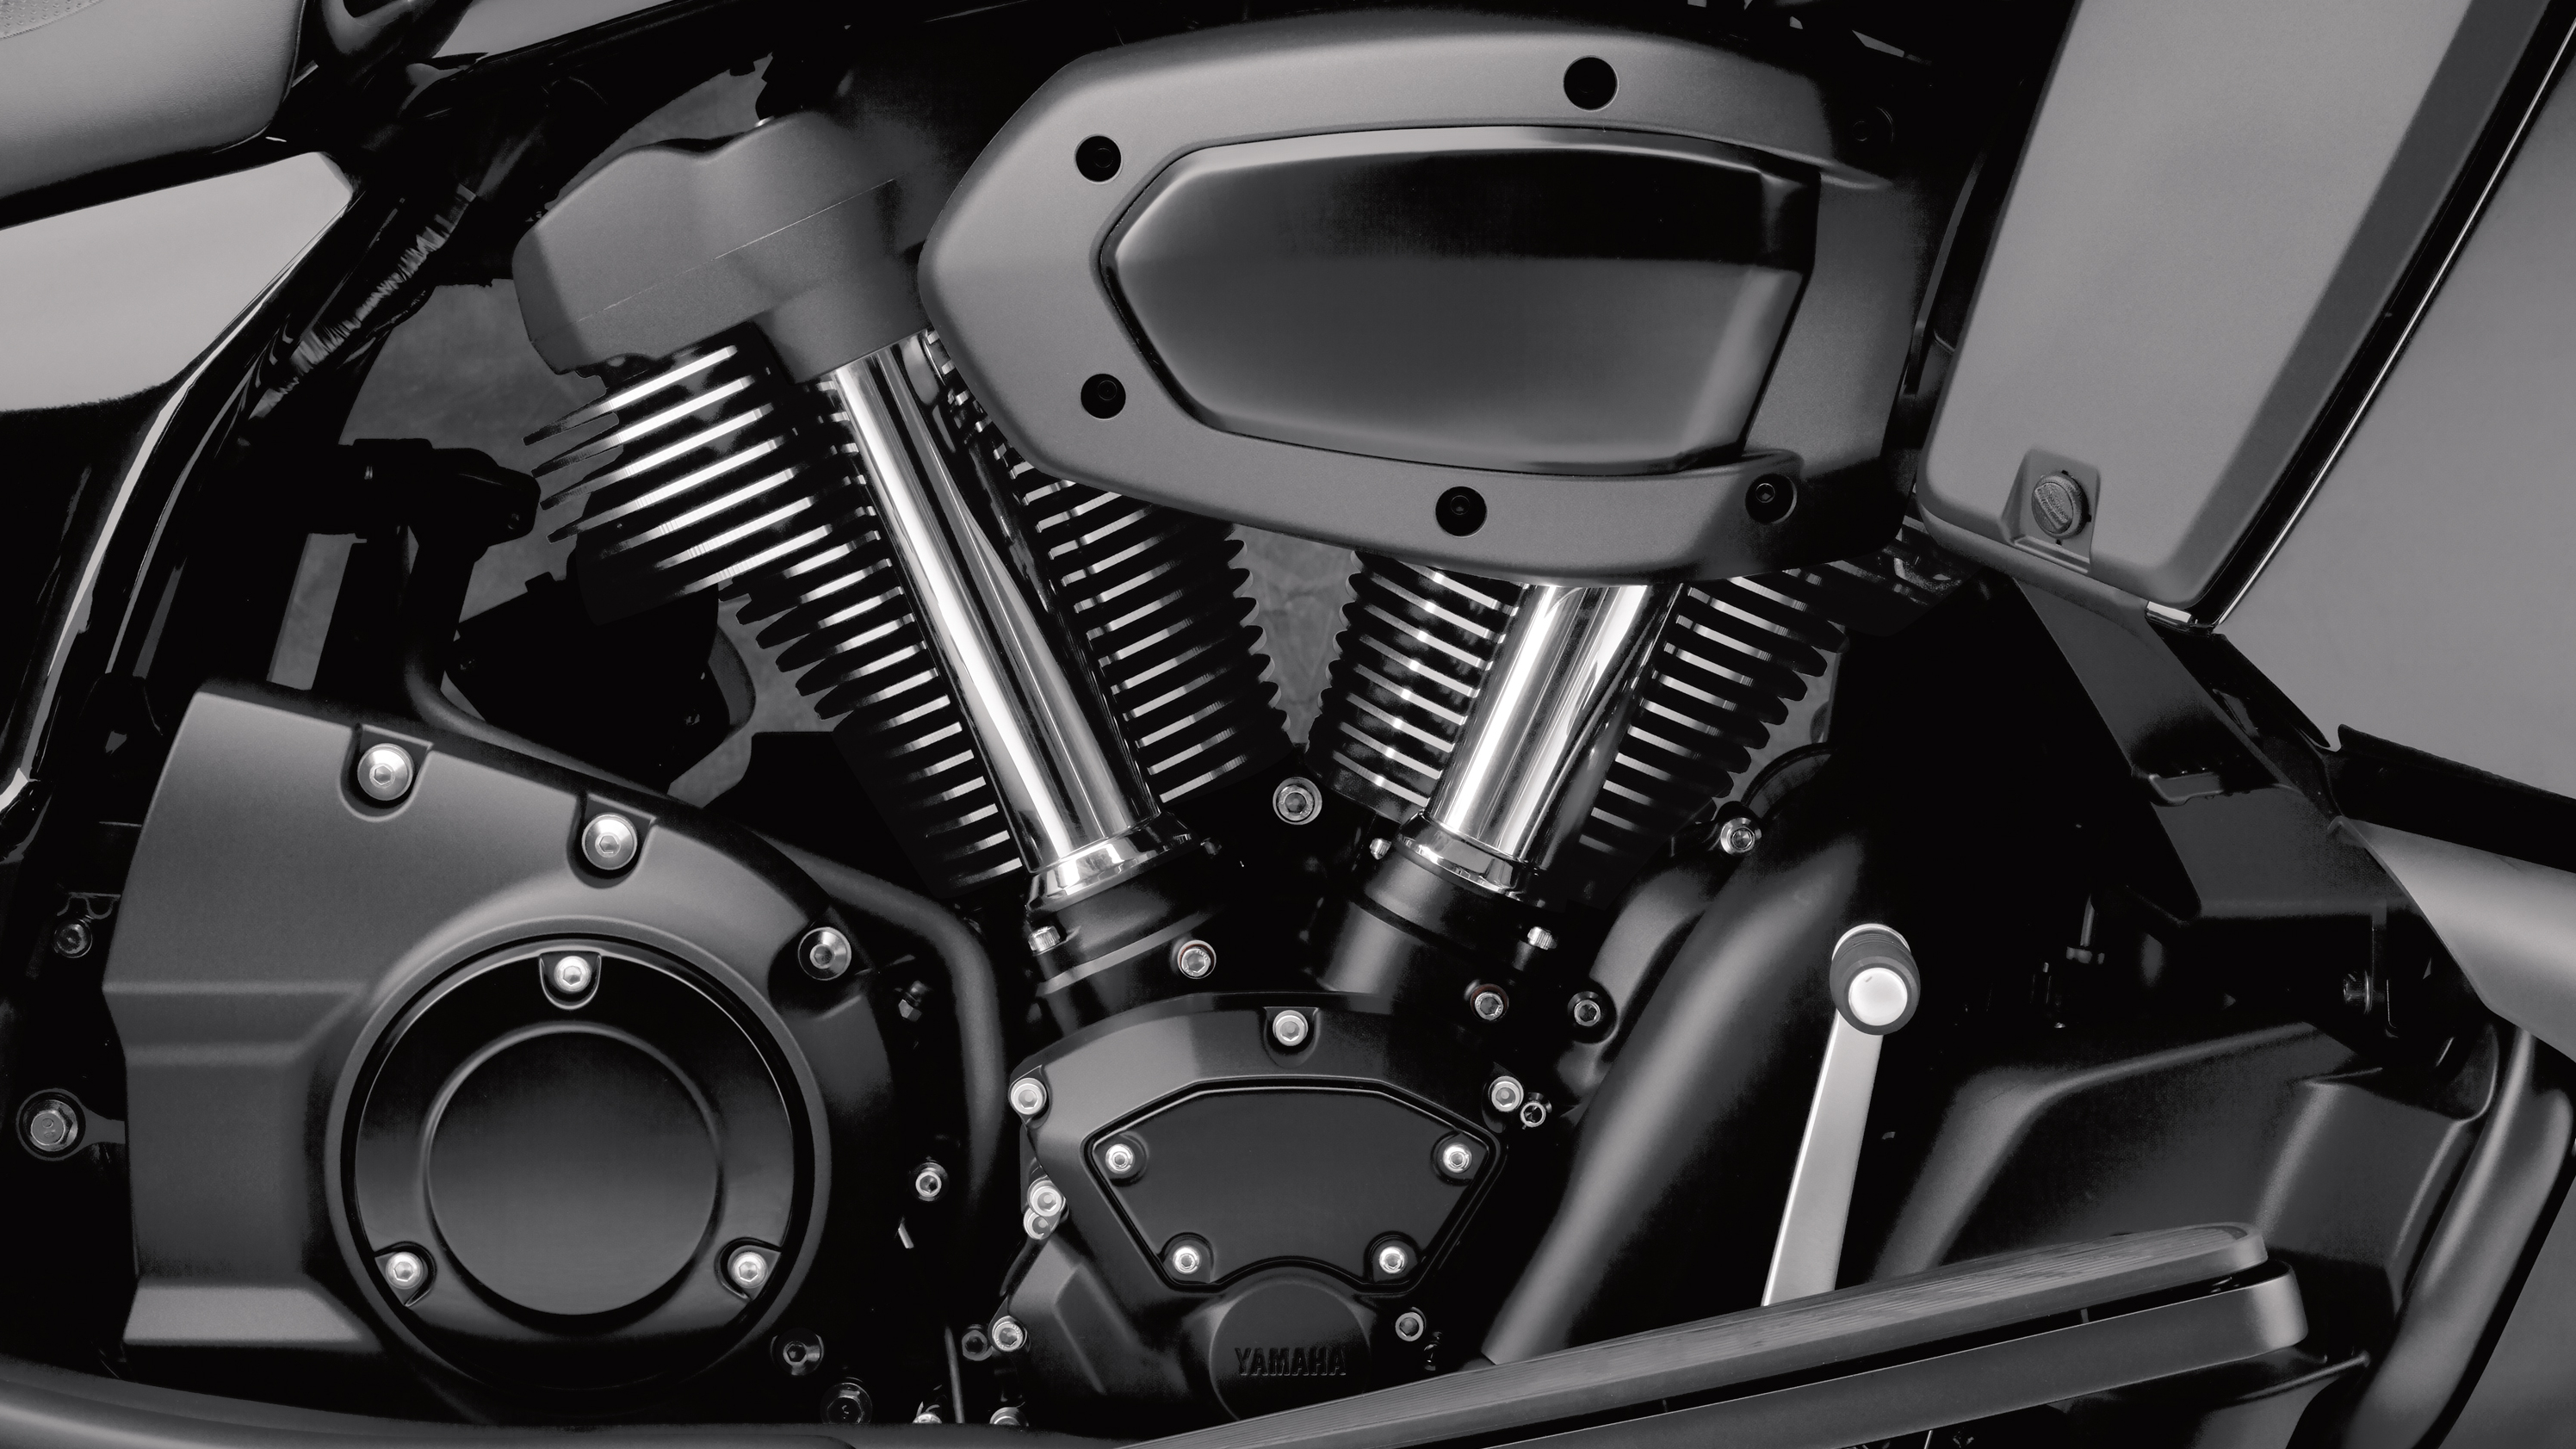 2018 Yamaha Star Eluderhow Does It Stack Up To The Competition Venture Motorcycle Engine Diagrams Top Speed